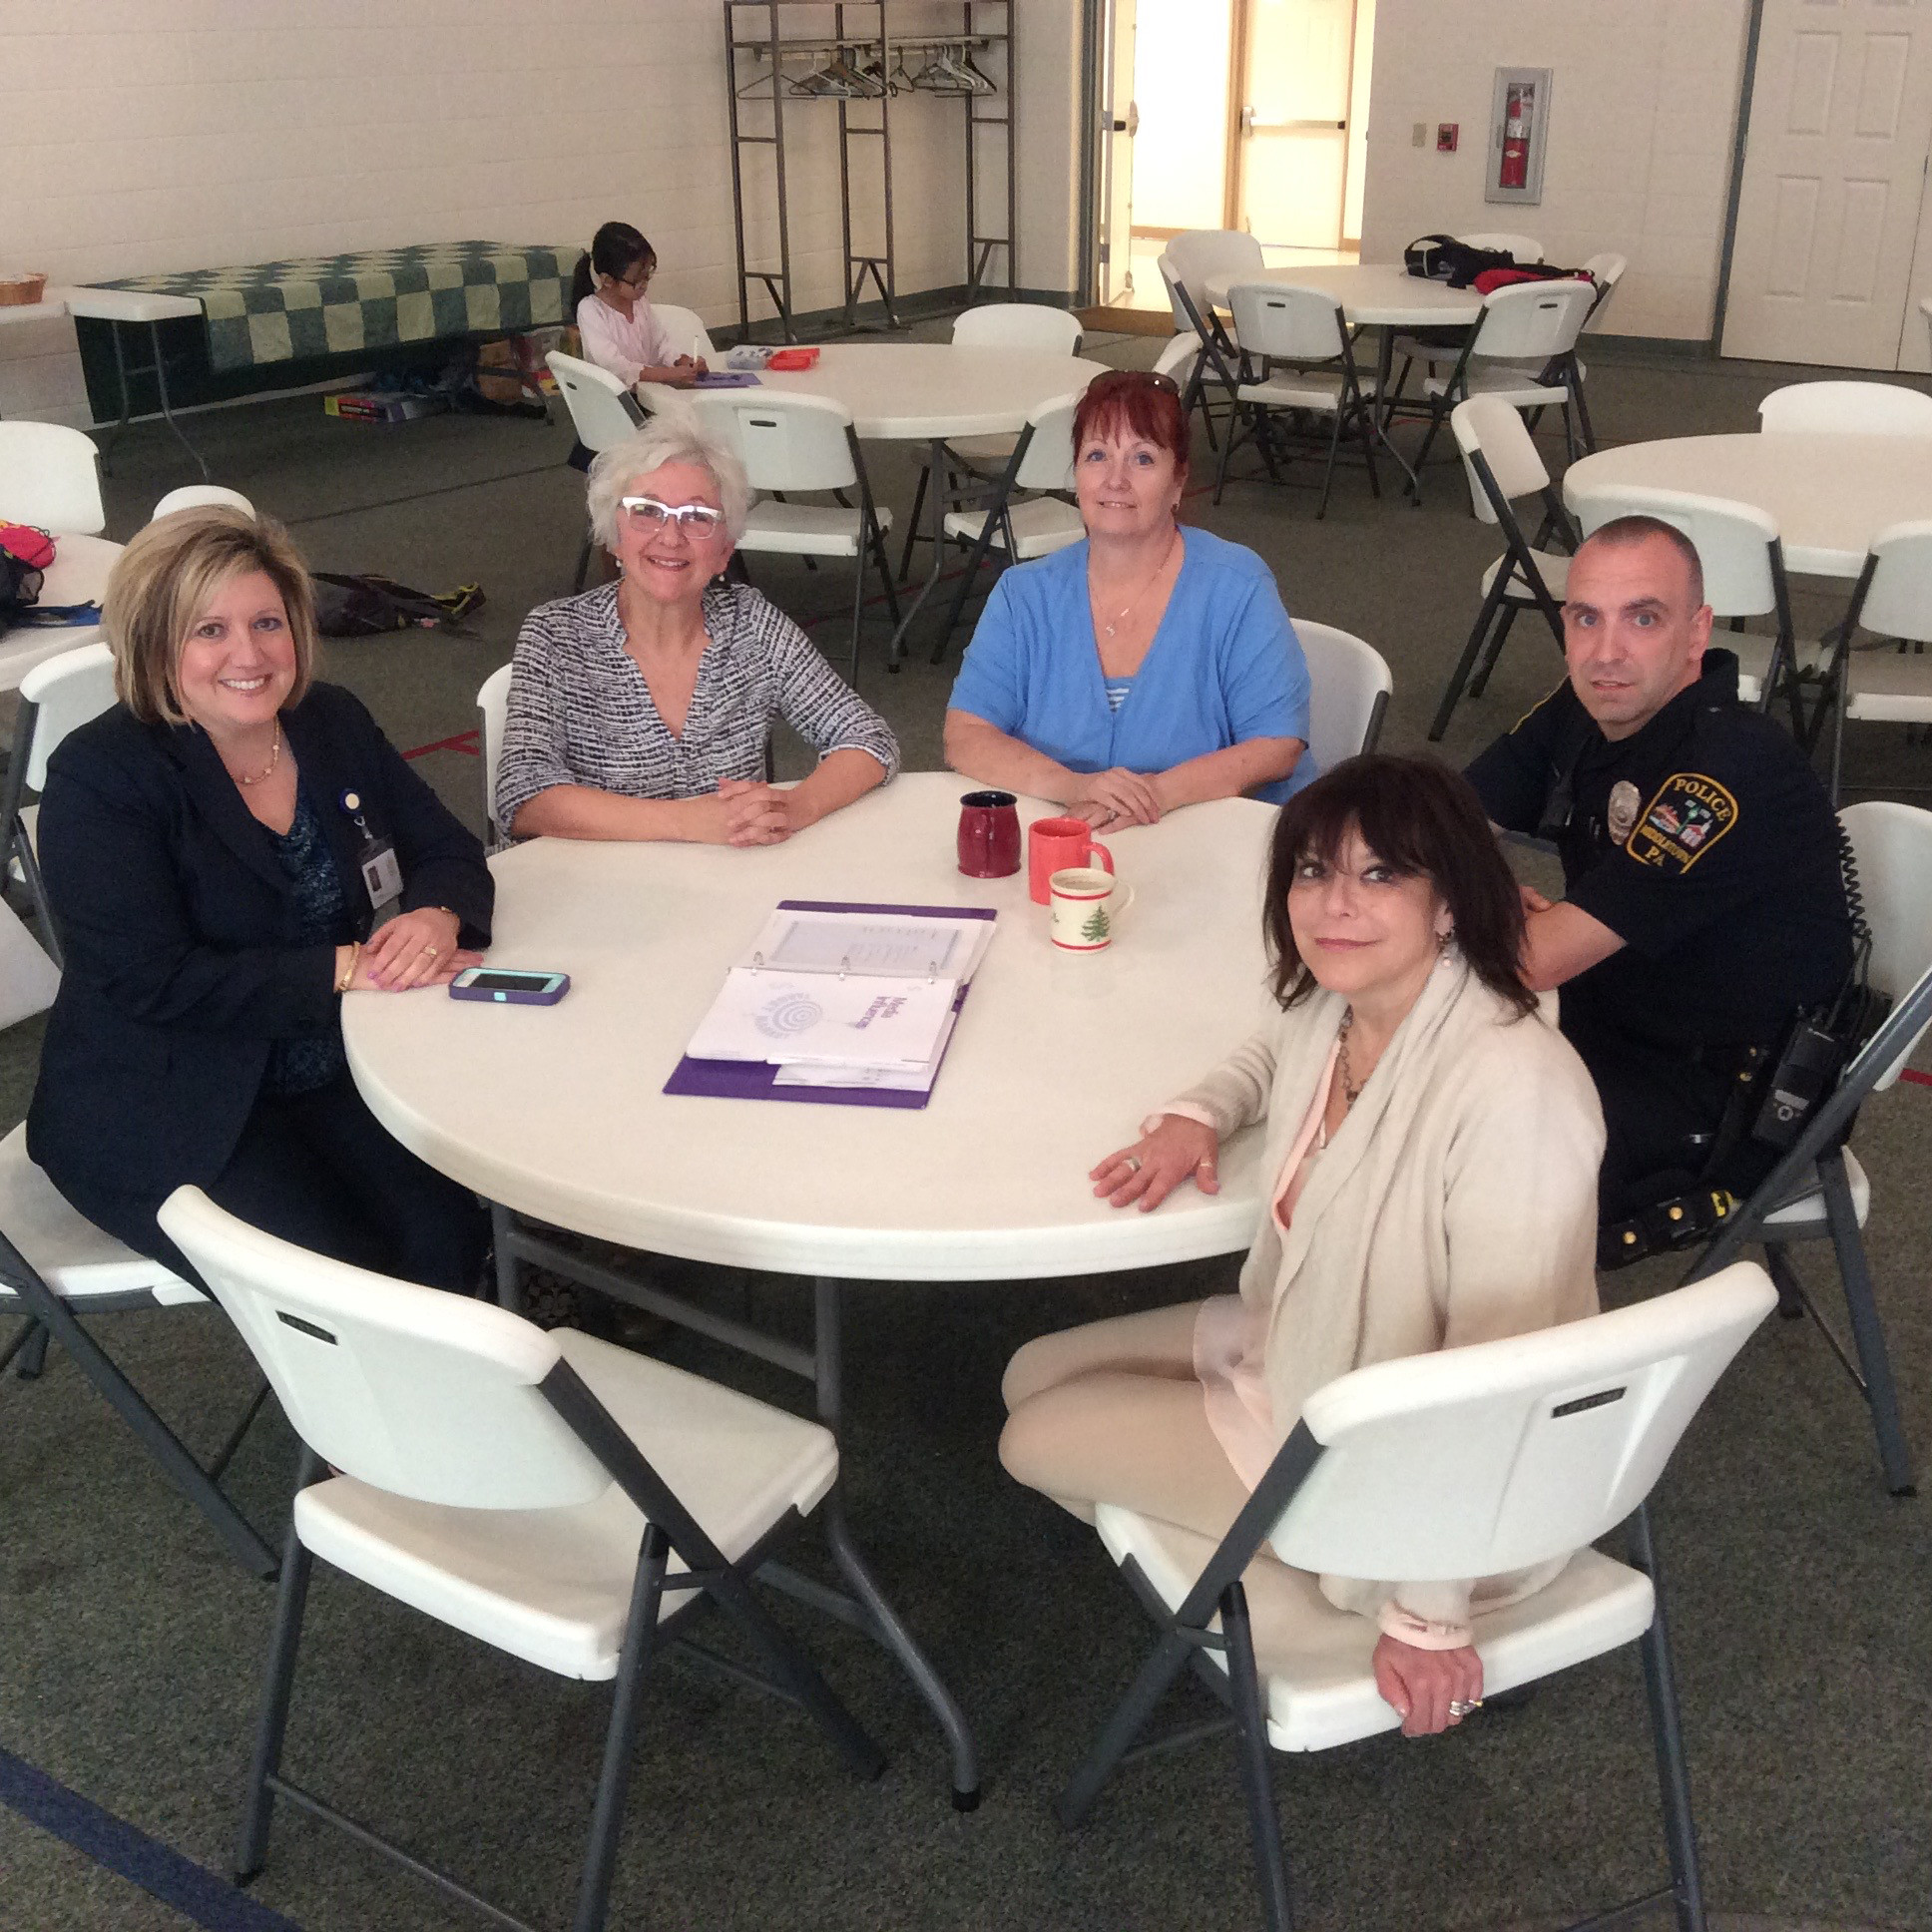 Supporters of Communities That Care gather at St. Peter's Lutheran Church in Middletown. From left are Middletown Area School District Superintendent Lori Suski, Ellen Willenbecher, Olmsted Regional Recreation Director Sue Layton-Klinger, Middletown Borough Councilor Anne Einhorn, and Middletown Police Officer Mark Laudenslager.